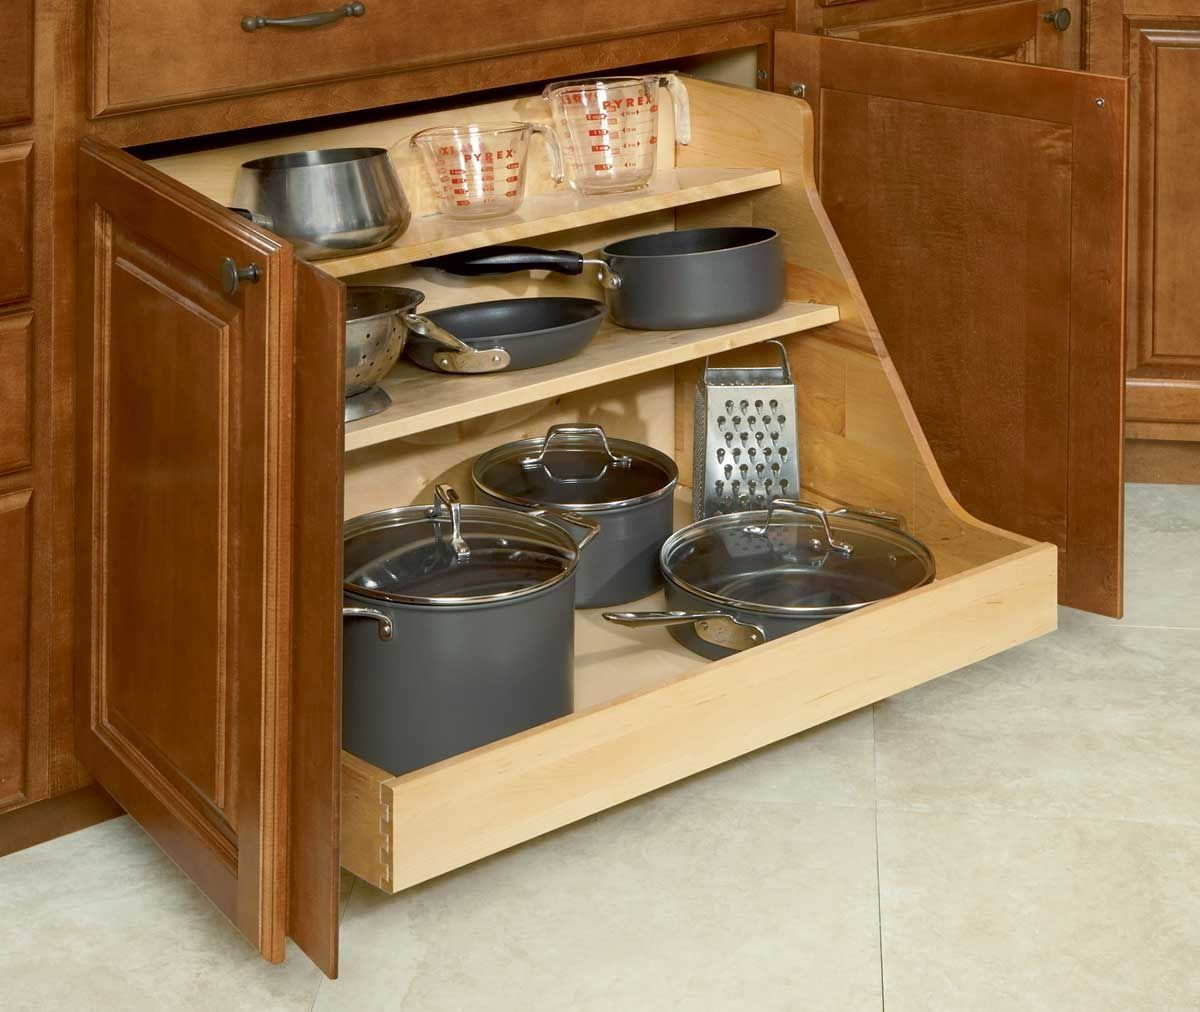 Storage Drawers For Kitchen Cabinets The Effect Is A Very Clean Atmosphere Which Kitchen Furniture Storage Kitchen Appliance Storage Kitchen Cabinet Storage